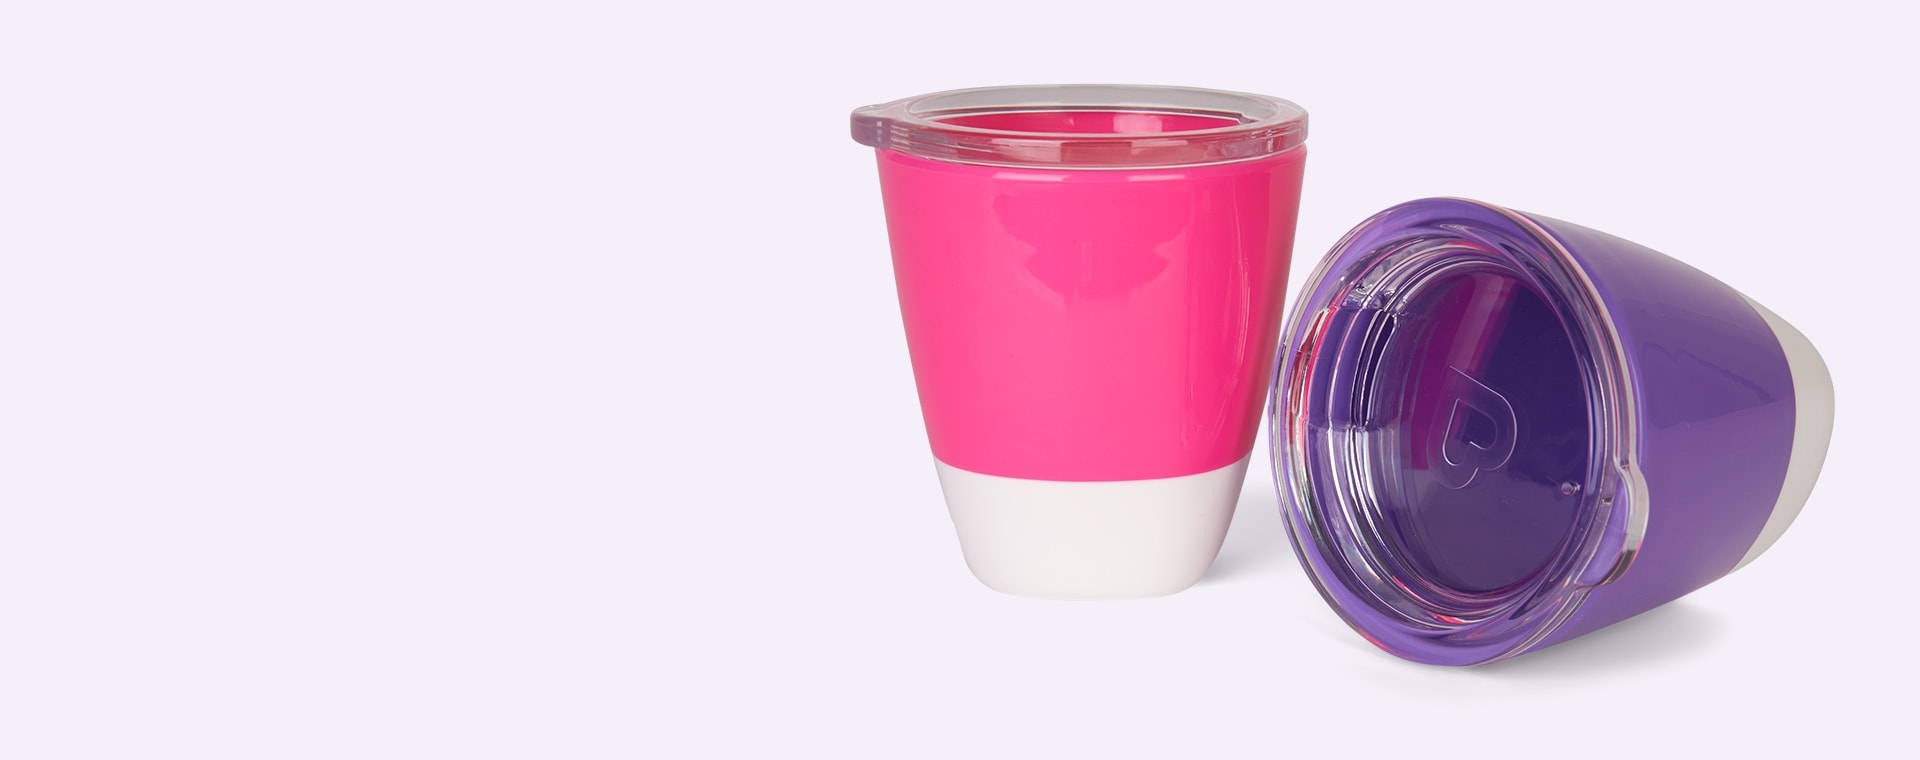 Purple/Pink Munchkin Splash Toddler Cup